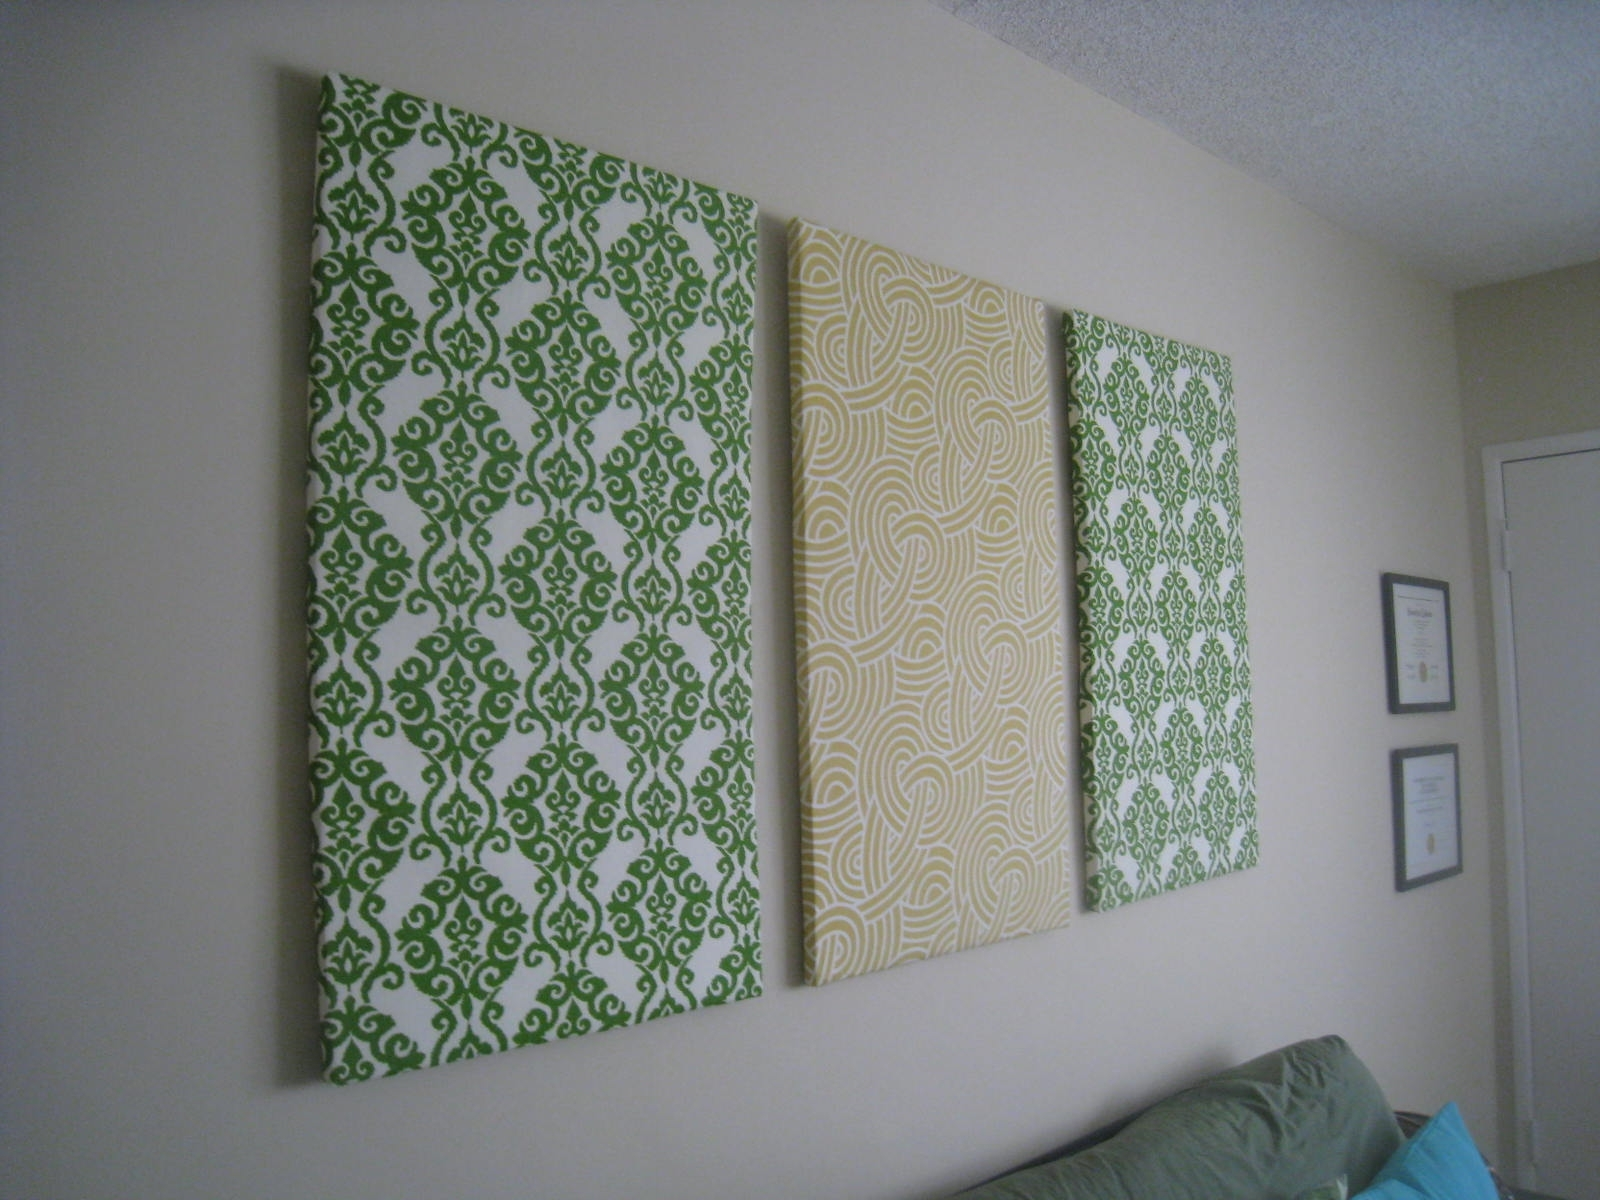 Art: Diy Fabric Wall Art With Regard To Newest Diy Fabric Wall Art Panels (View 1 of 15)